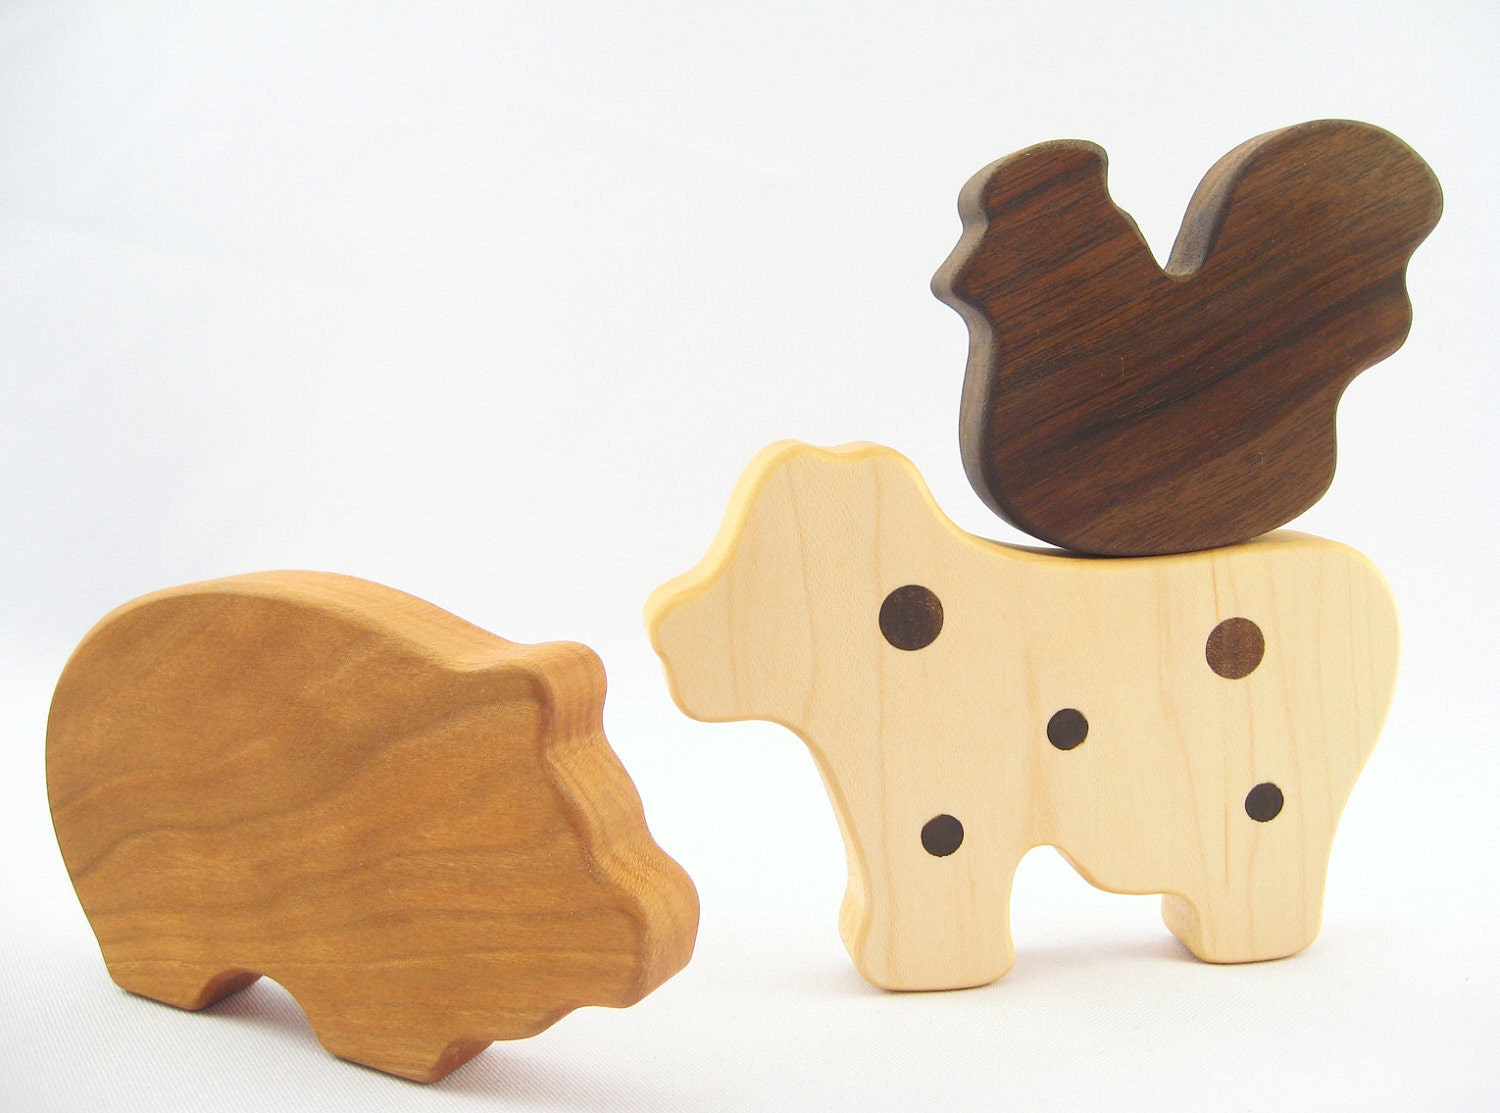 natural wood TEETHING gift set - organic eco-friendly wooden teethers for farm loving baby, Barnyard animal toys, homegrown organic finish